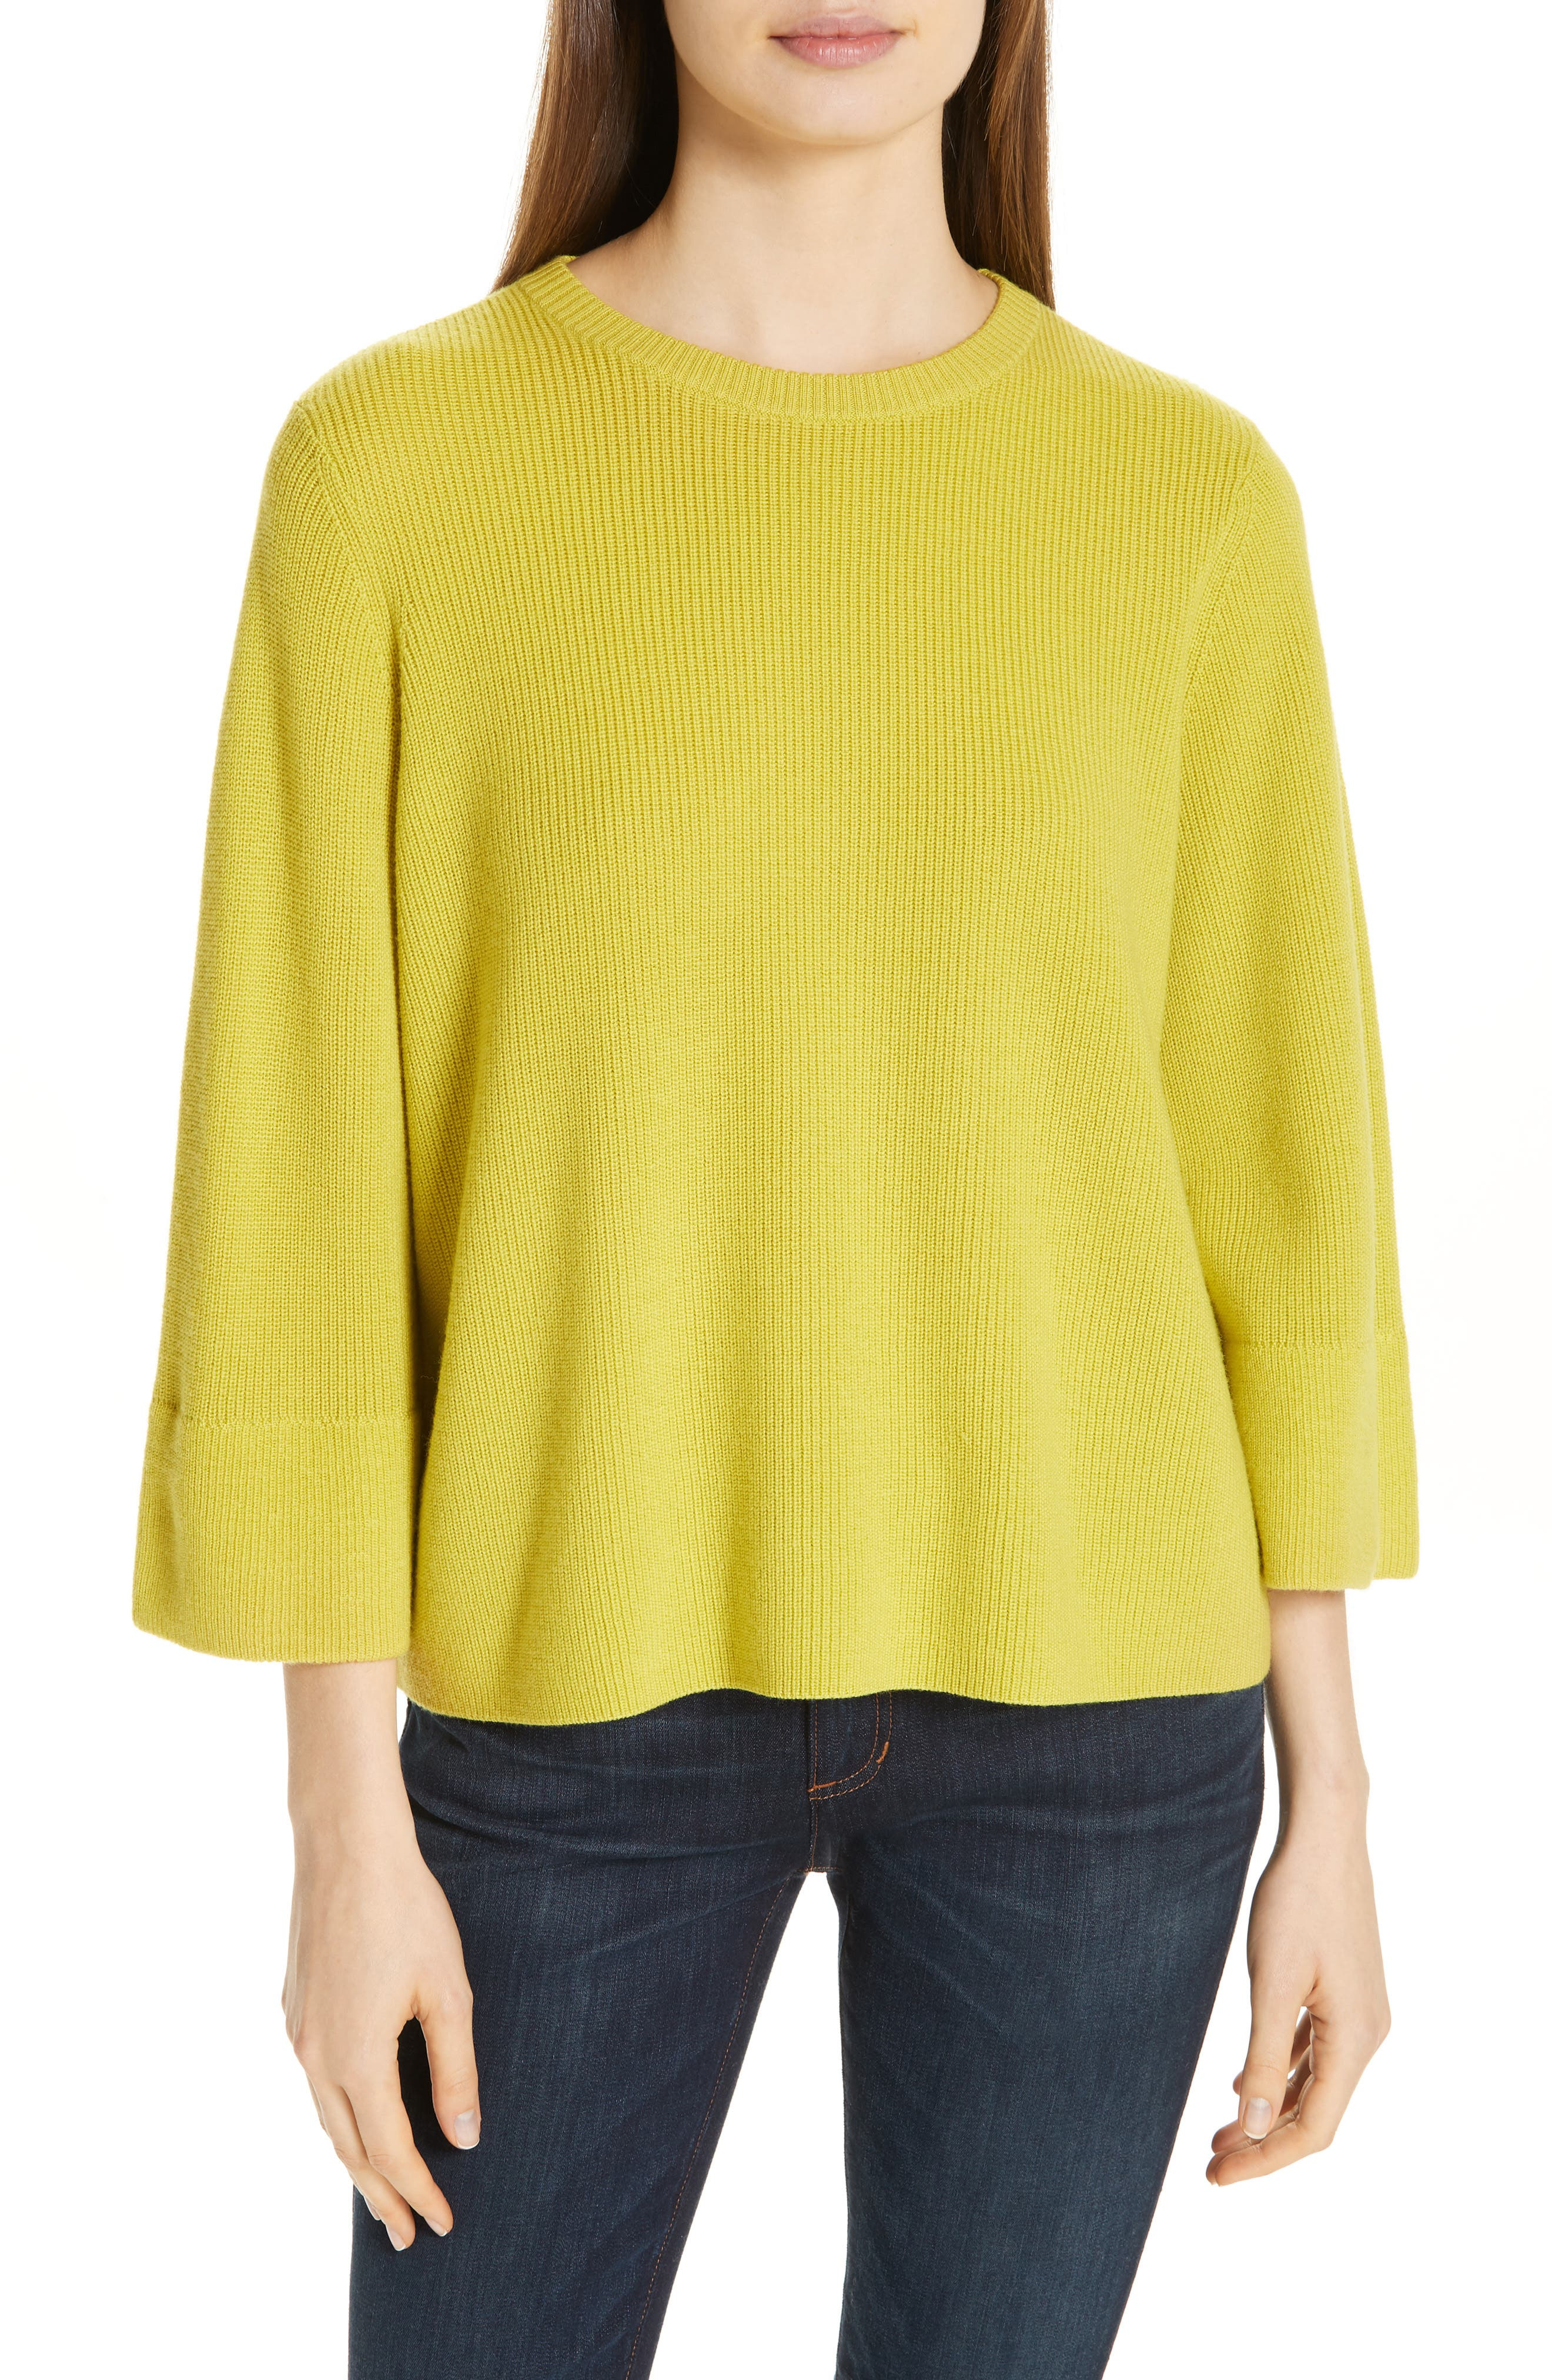 EILEEN FISHER, Three Quarter Sleeve Sweater, Main thumbnail 1, color, VERBENA